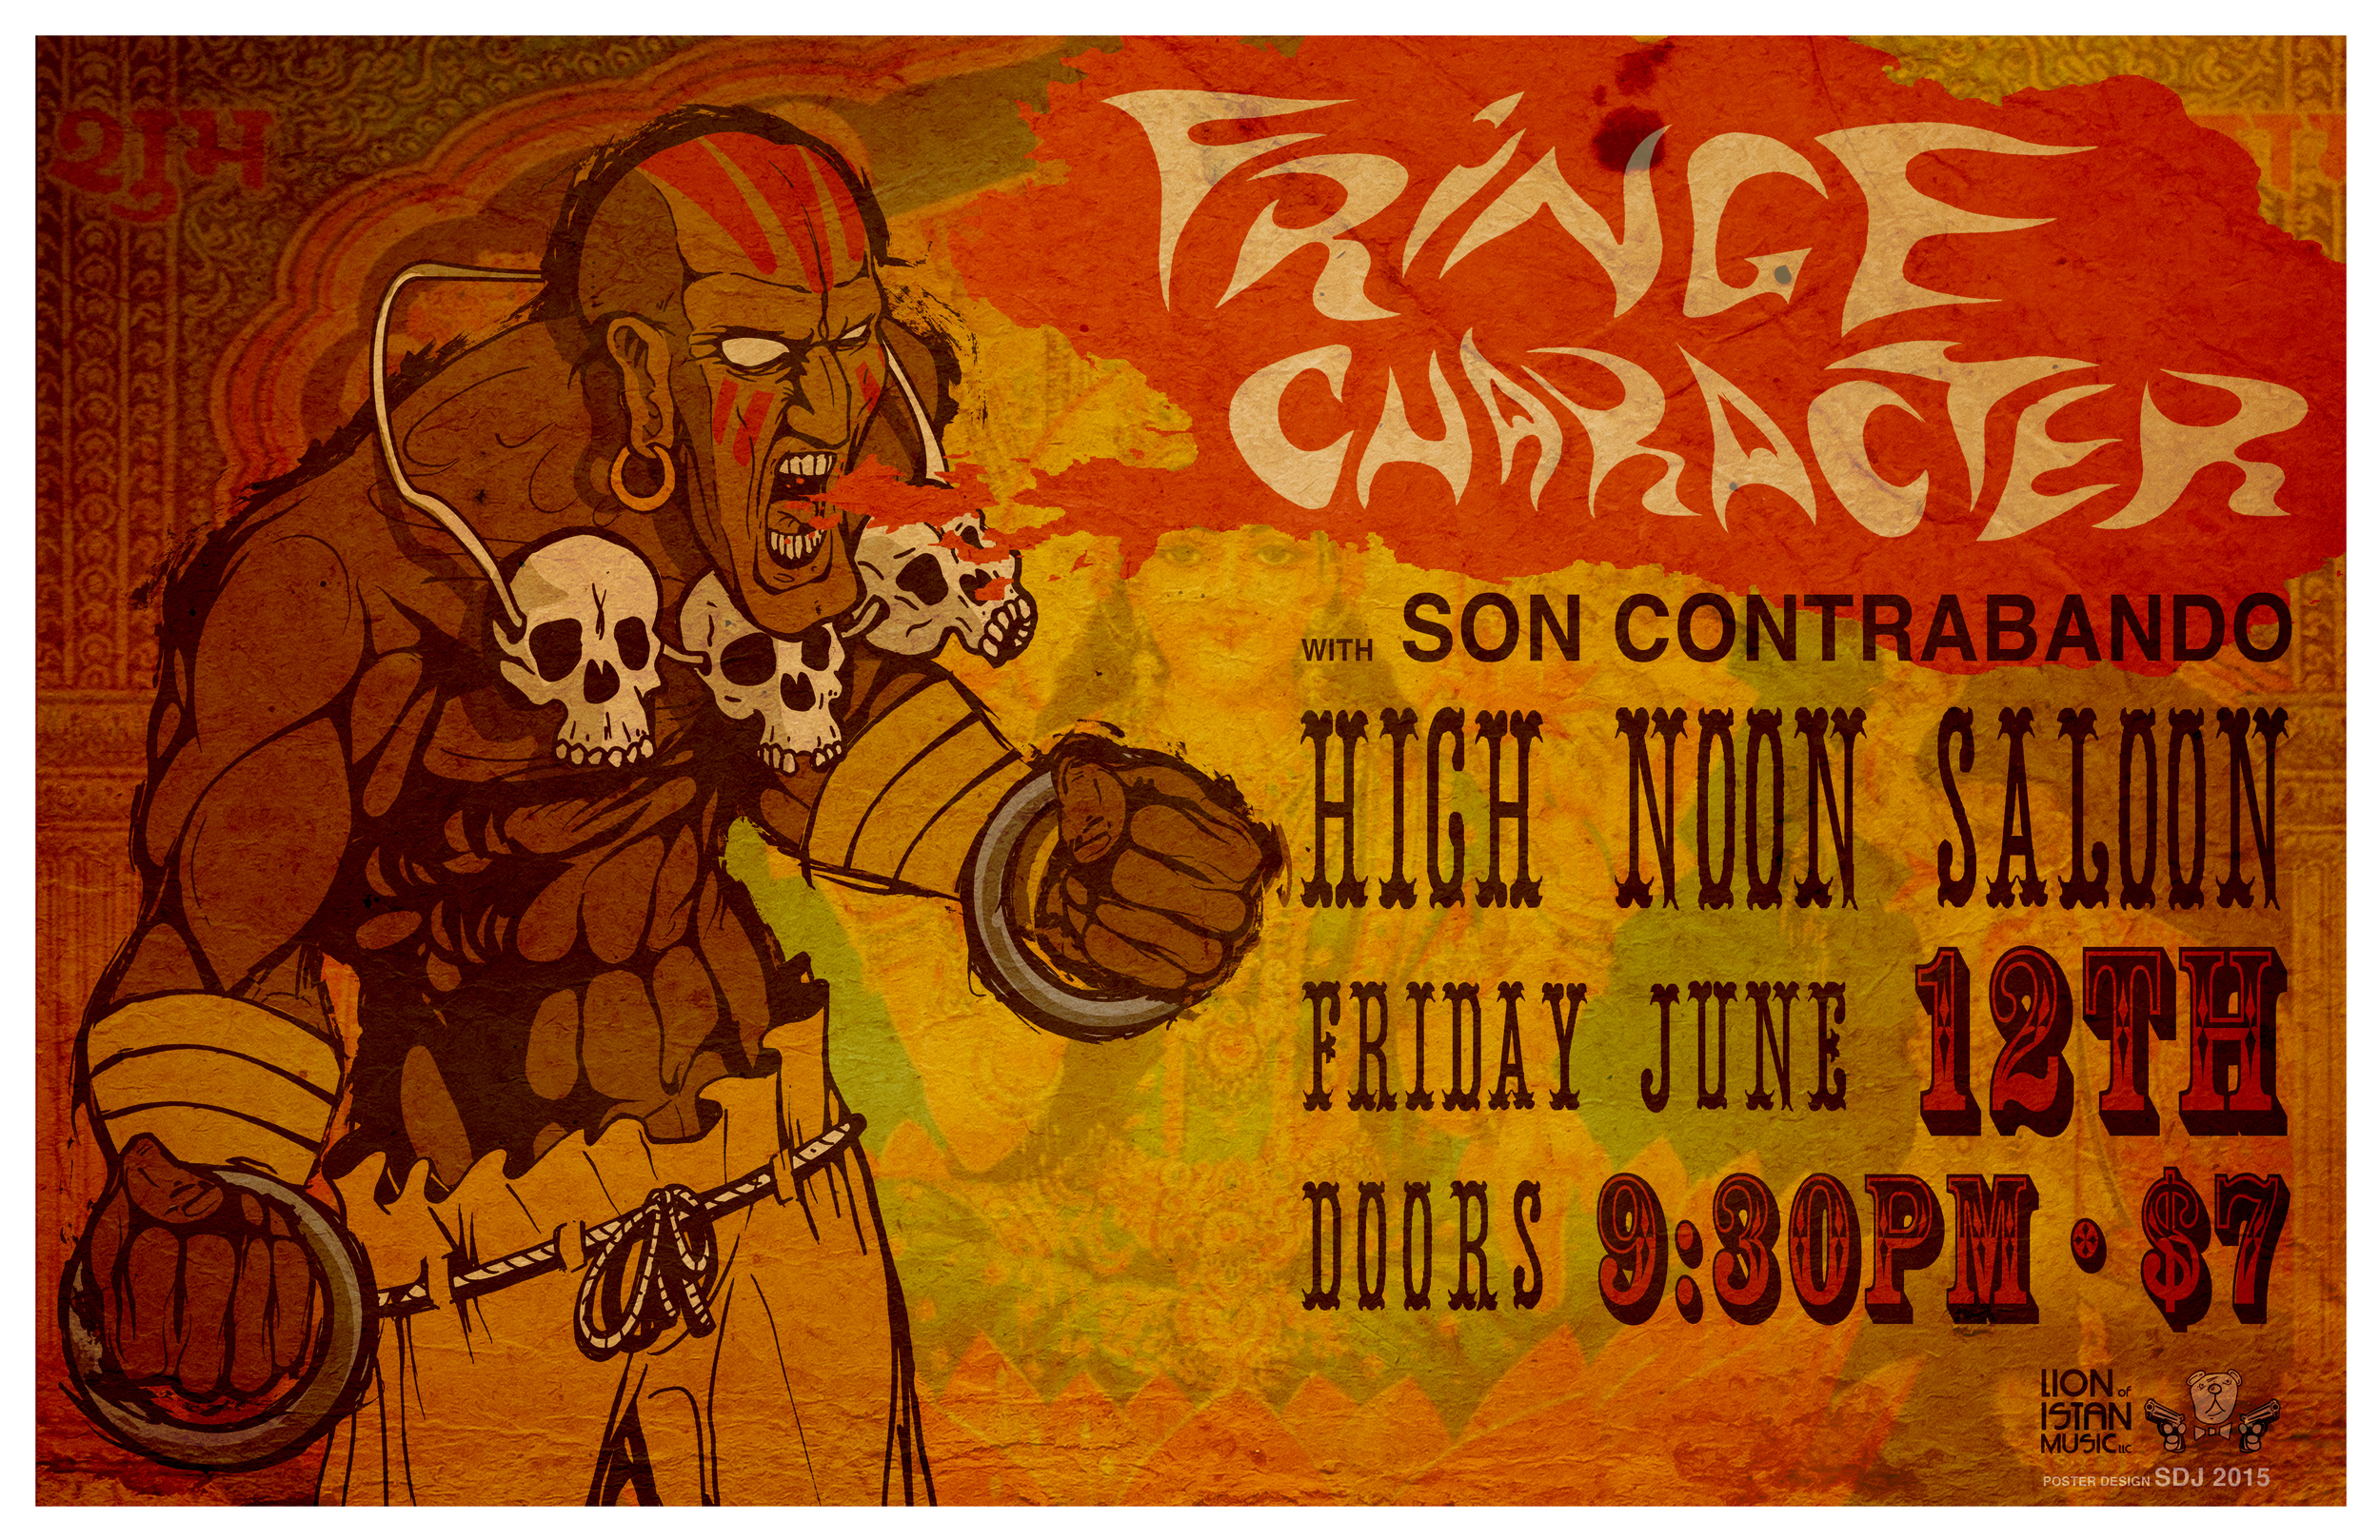 Fringe Character | Son Contrabado @ High Noon Saloon, June 12th 2015